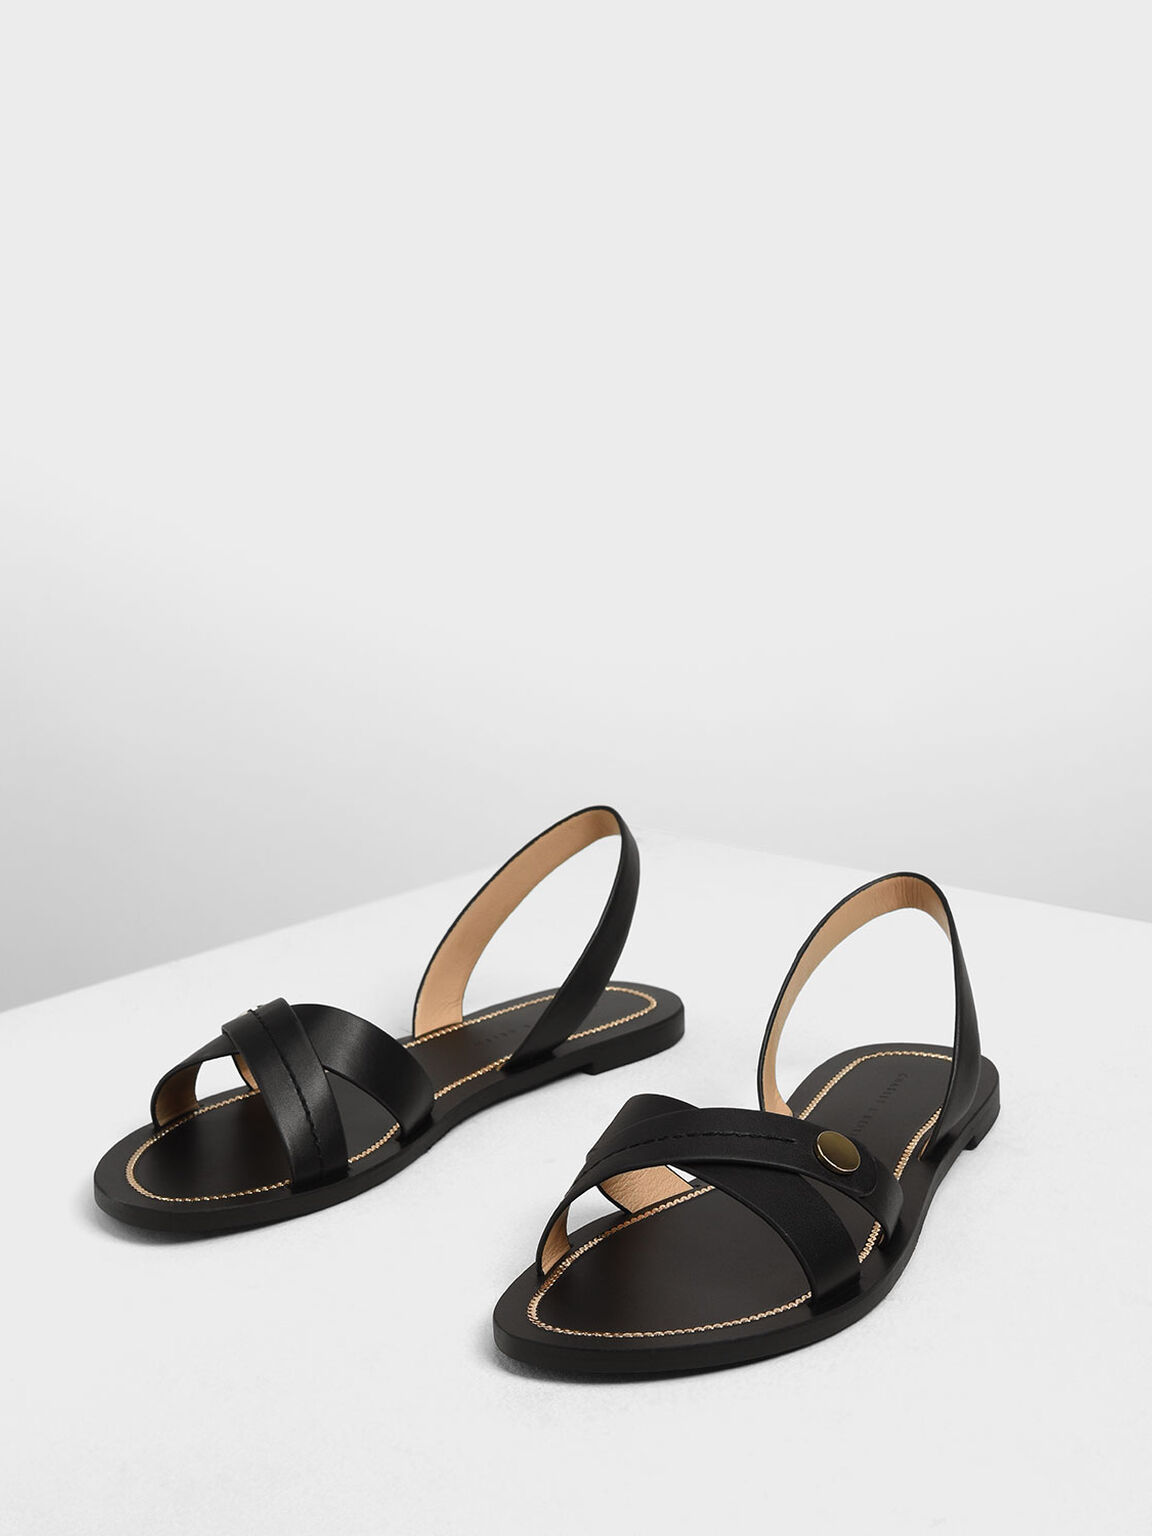 Button Detail Criss Cross Sandals, Black, hi-res